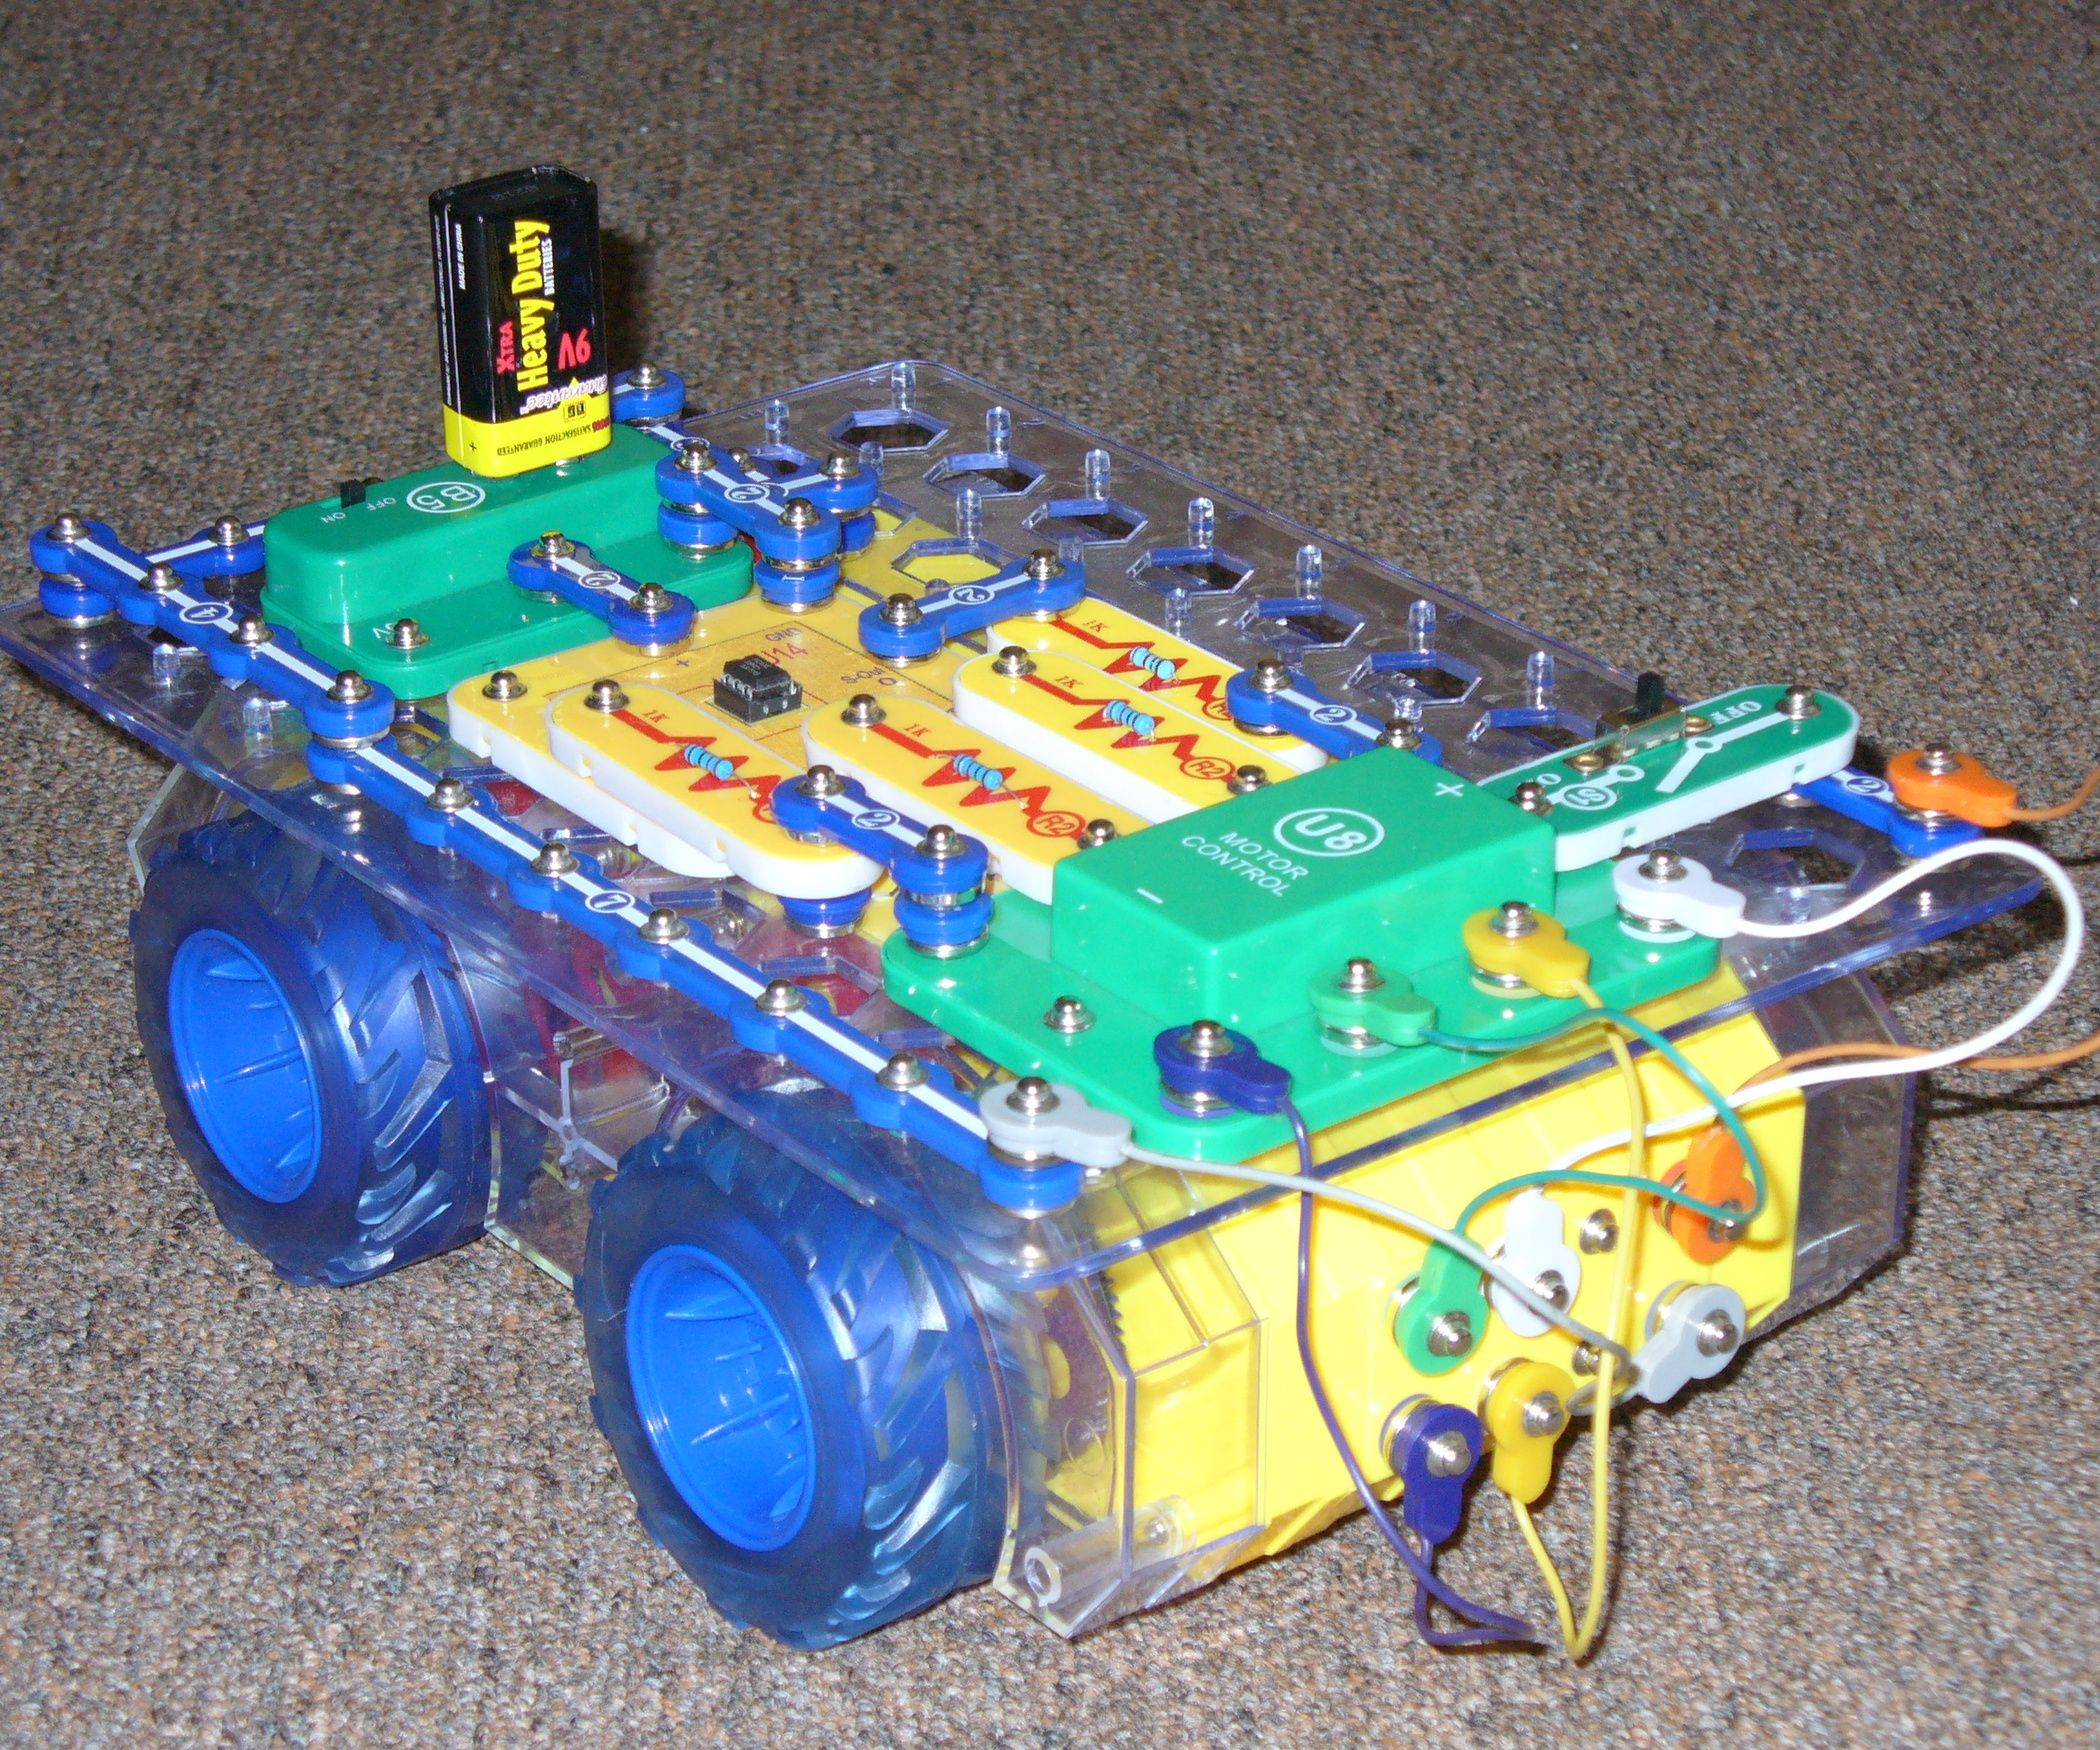 Make A Simple Snap Circuits Programmable Robot Library Teens Elenco Sc750 Extreme New Ebay In This Instructable You Will Learn How To Build